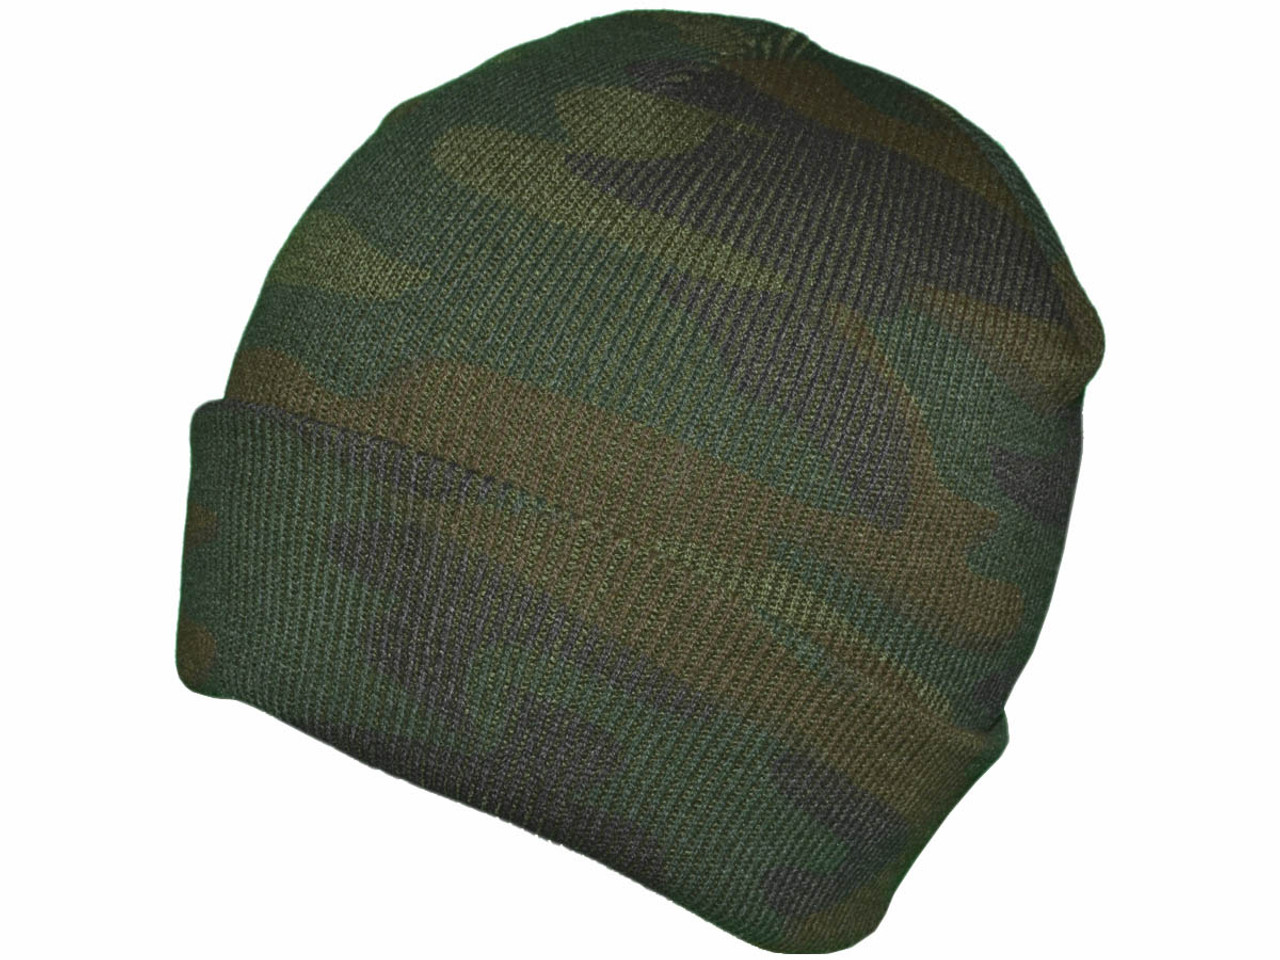 851f4afea Camo Beanies - Winter Plain Long Knit Hat Skull Toboggan Stocking Caps  **SNUG FIT** - 5233